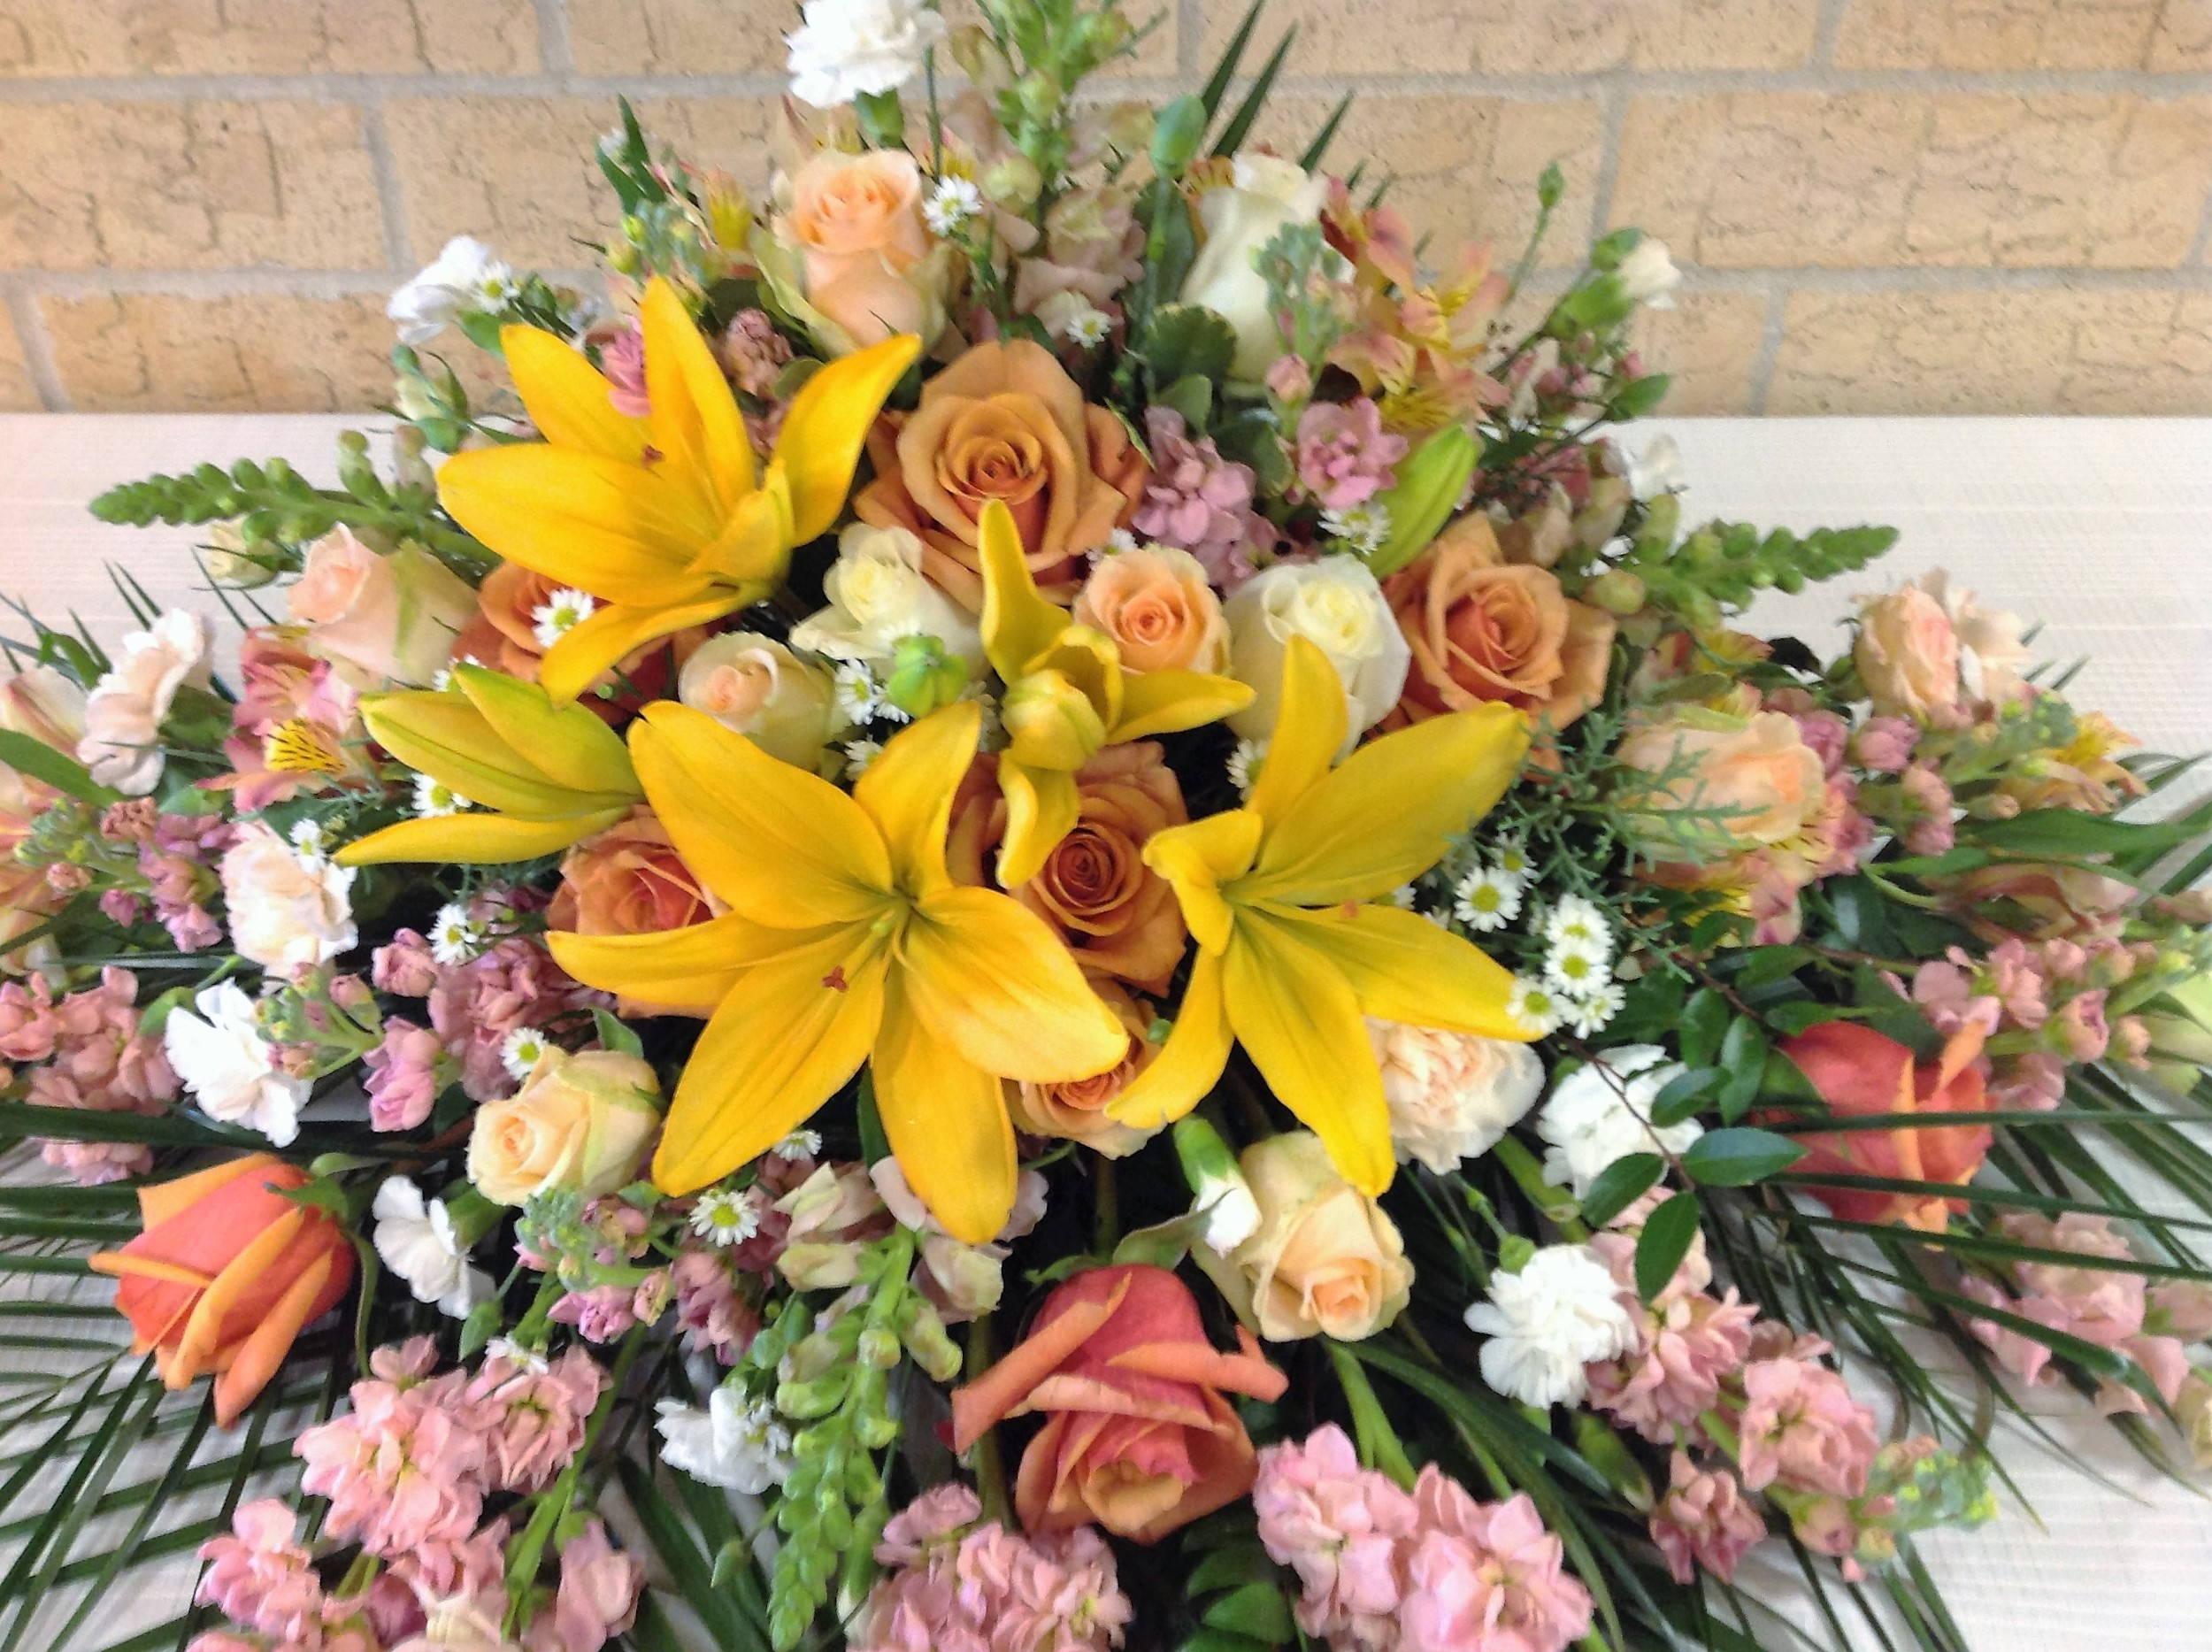 #2 Yellow lily, peach roses, multi colored casket spray